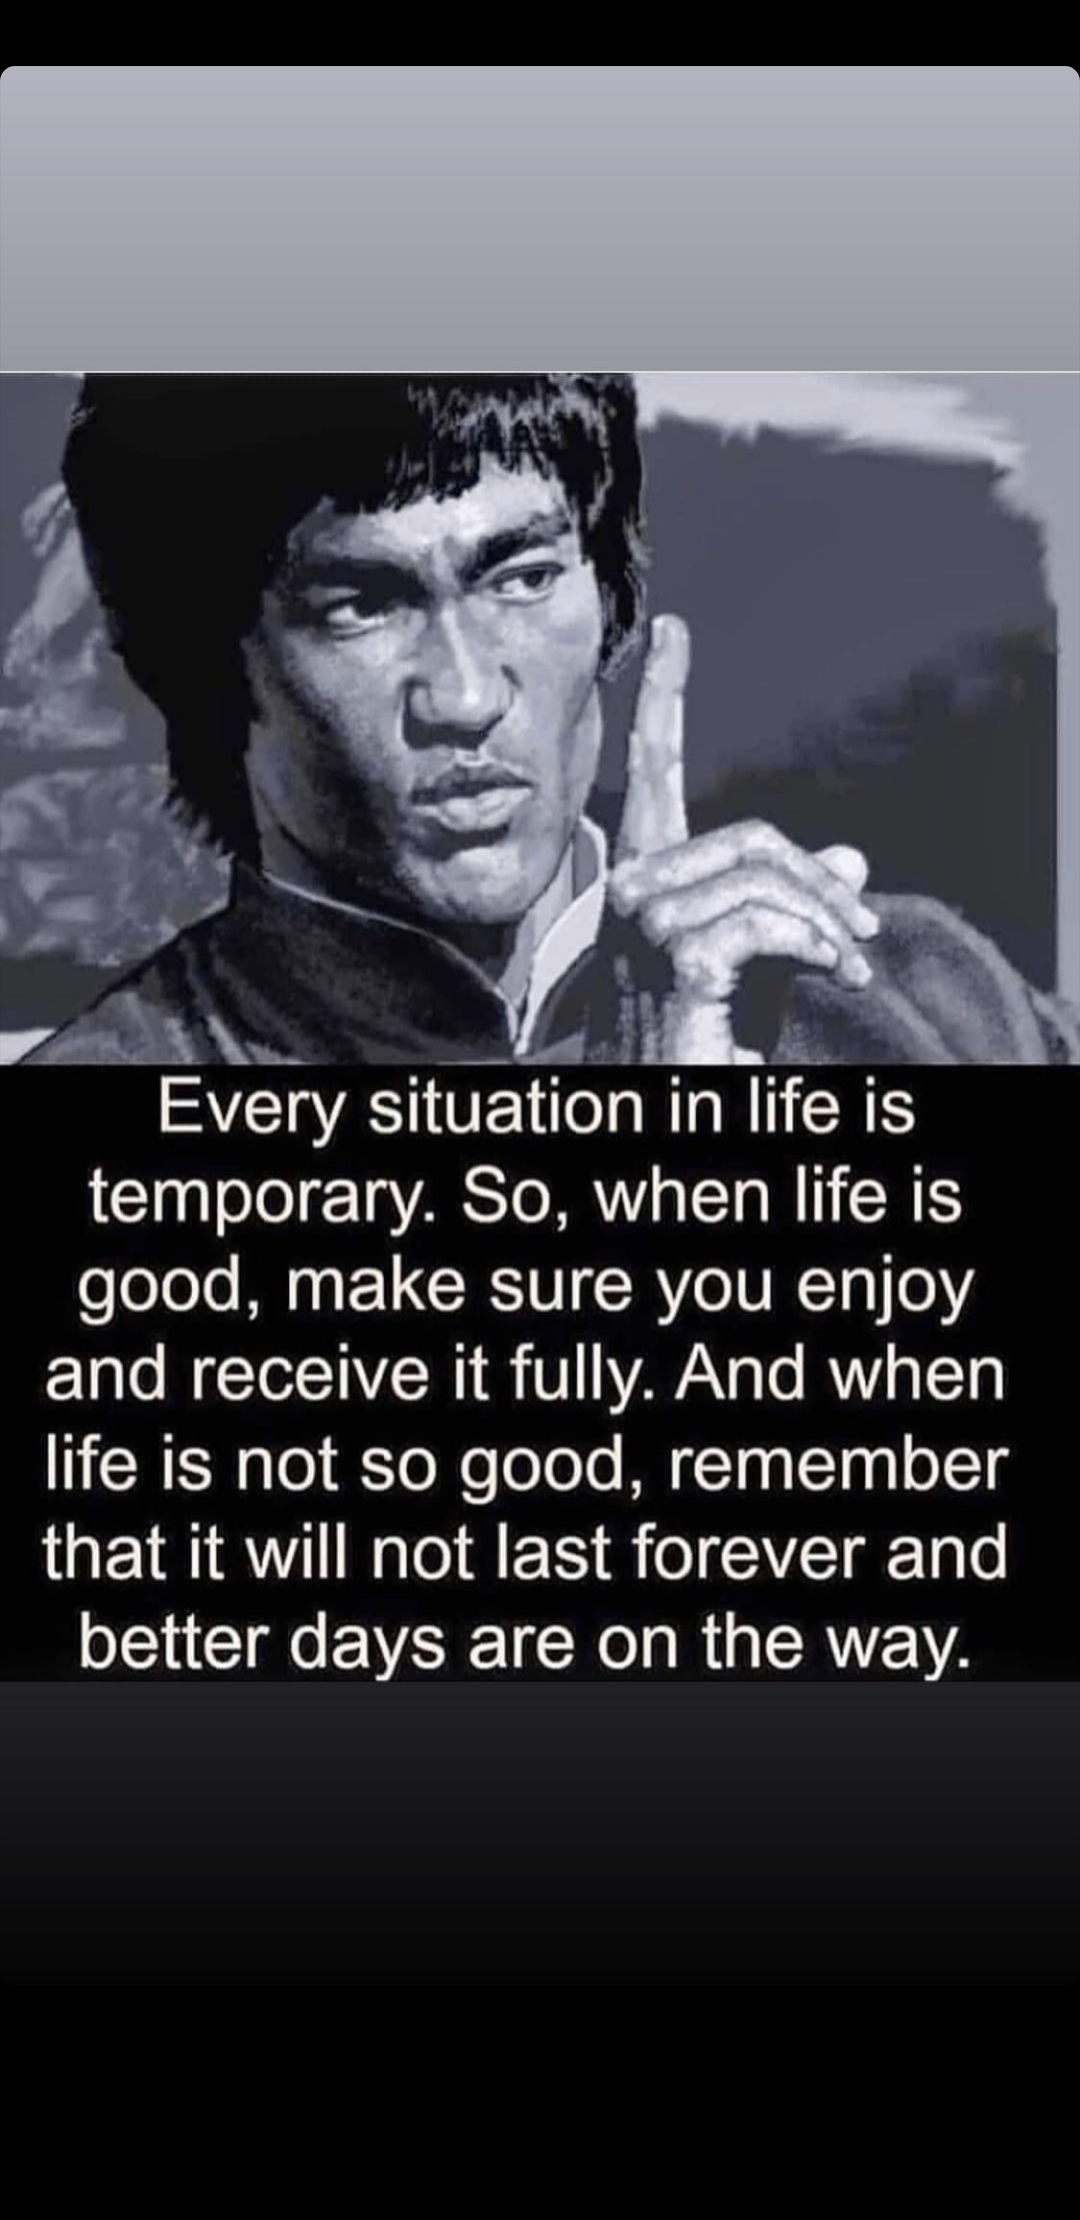 [image] Evry situation in life is temporary